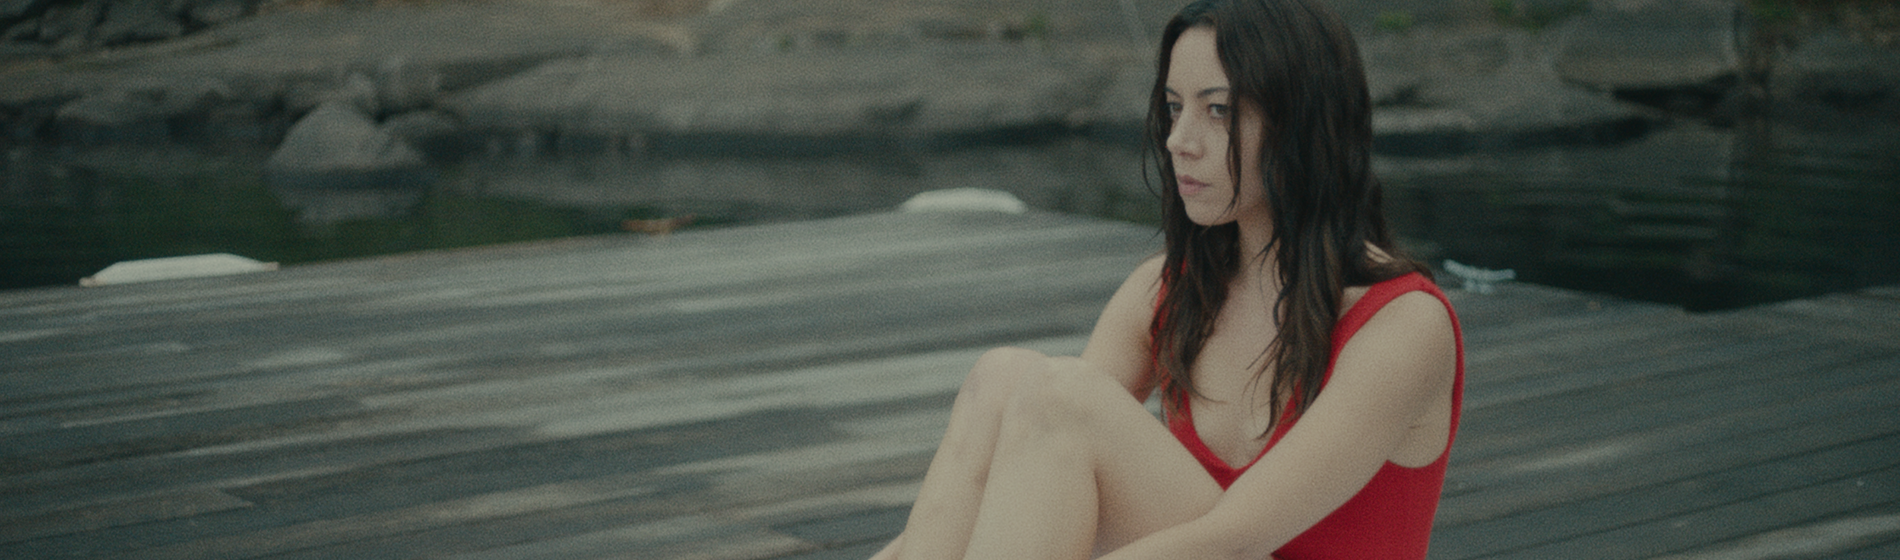 Aubrey Plaza wearing a red bathing suit sitting on a dock in a still from Black Bear